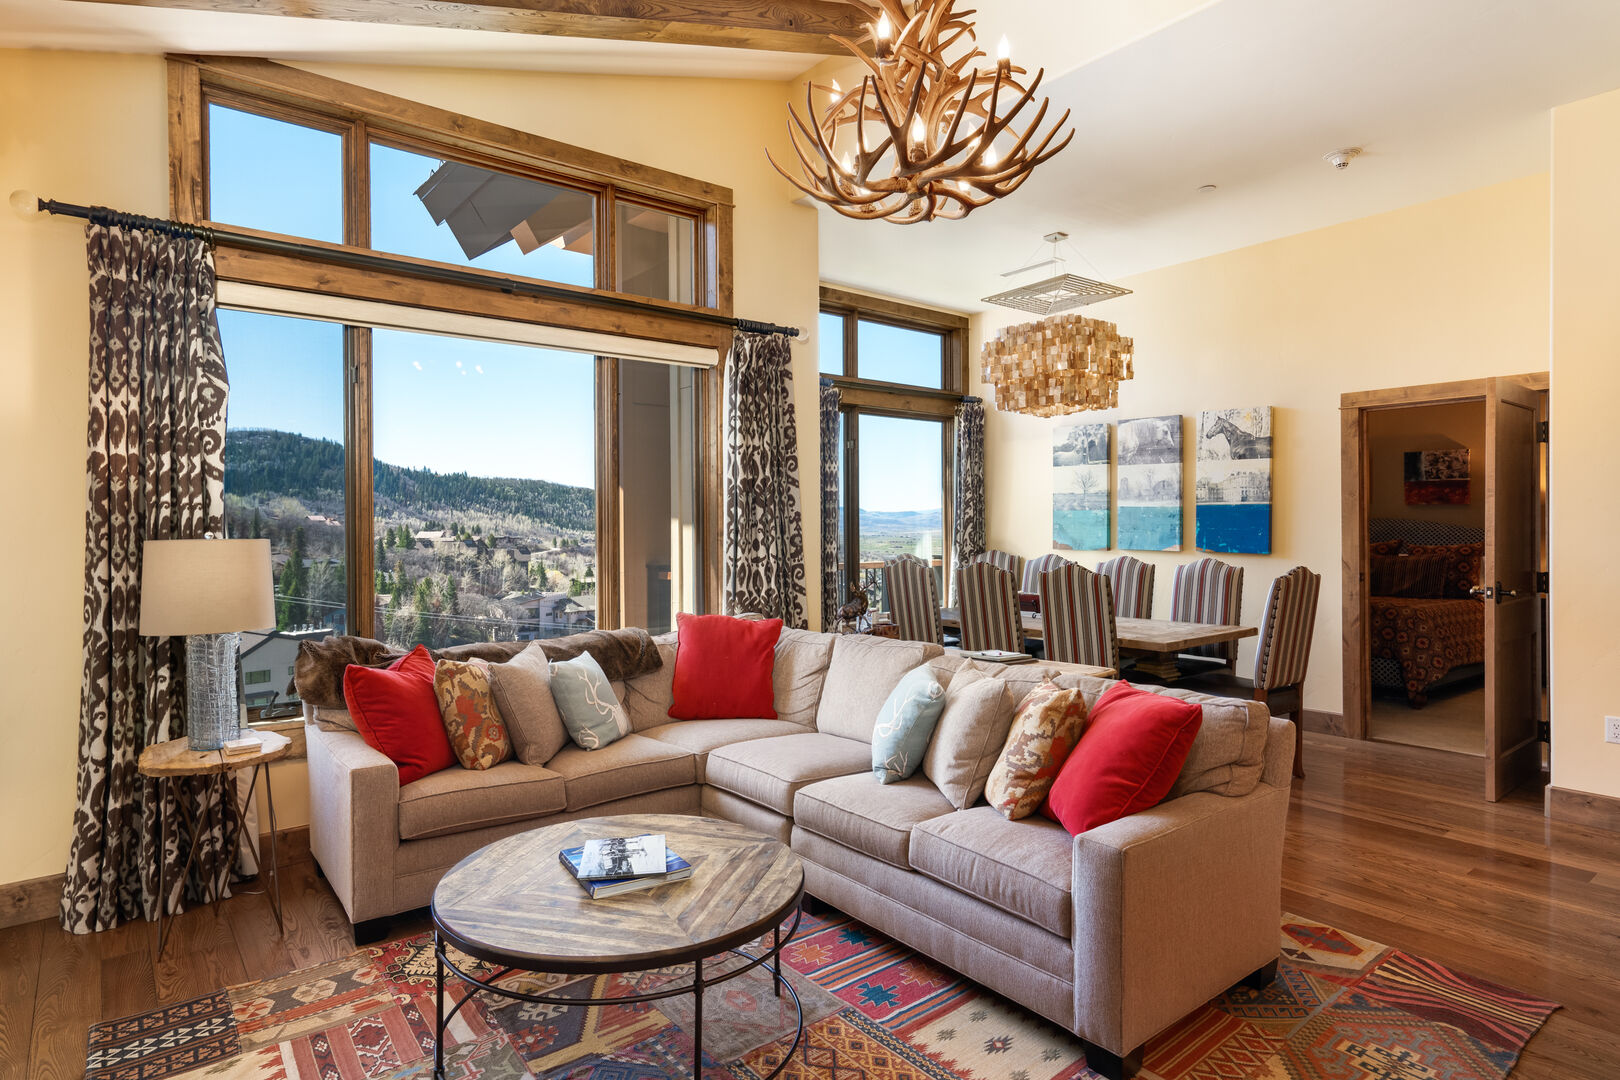 Gorgeous new couch, open floor plan at this luxurious Edgemont condo